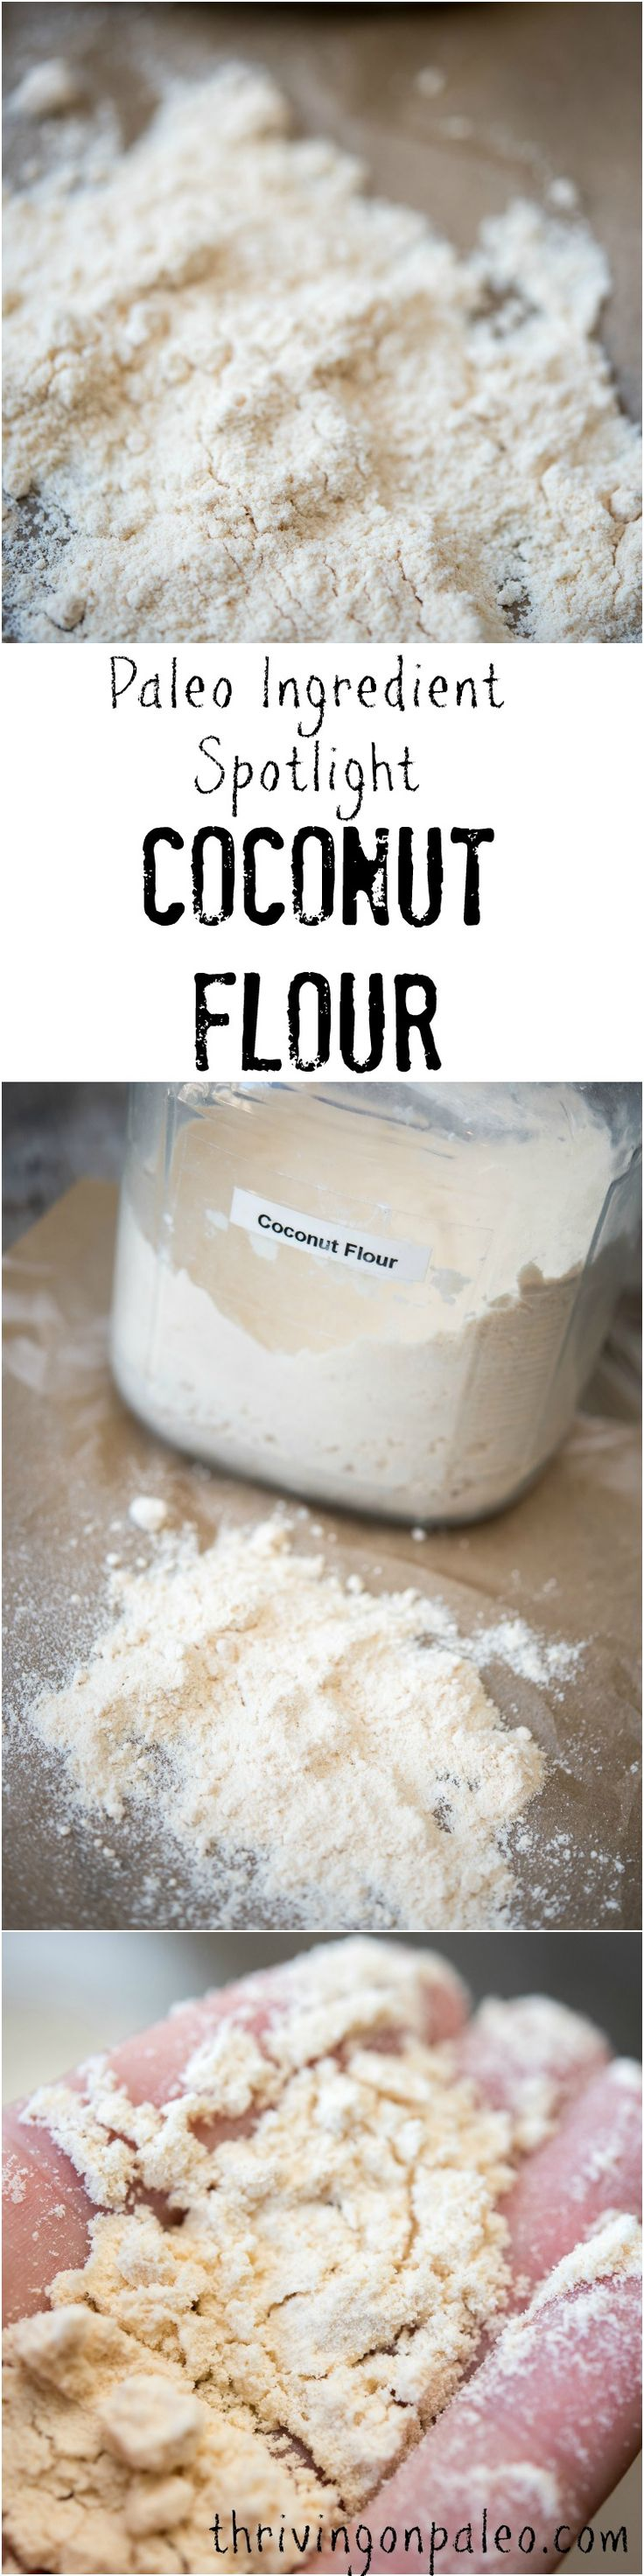 Paleo Ingredient Spotlight: Coconut Flour by Thriving On Paleo. What is coconut flour and what can it be used for?